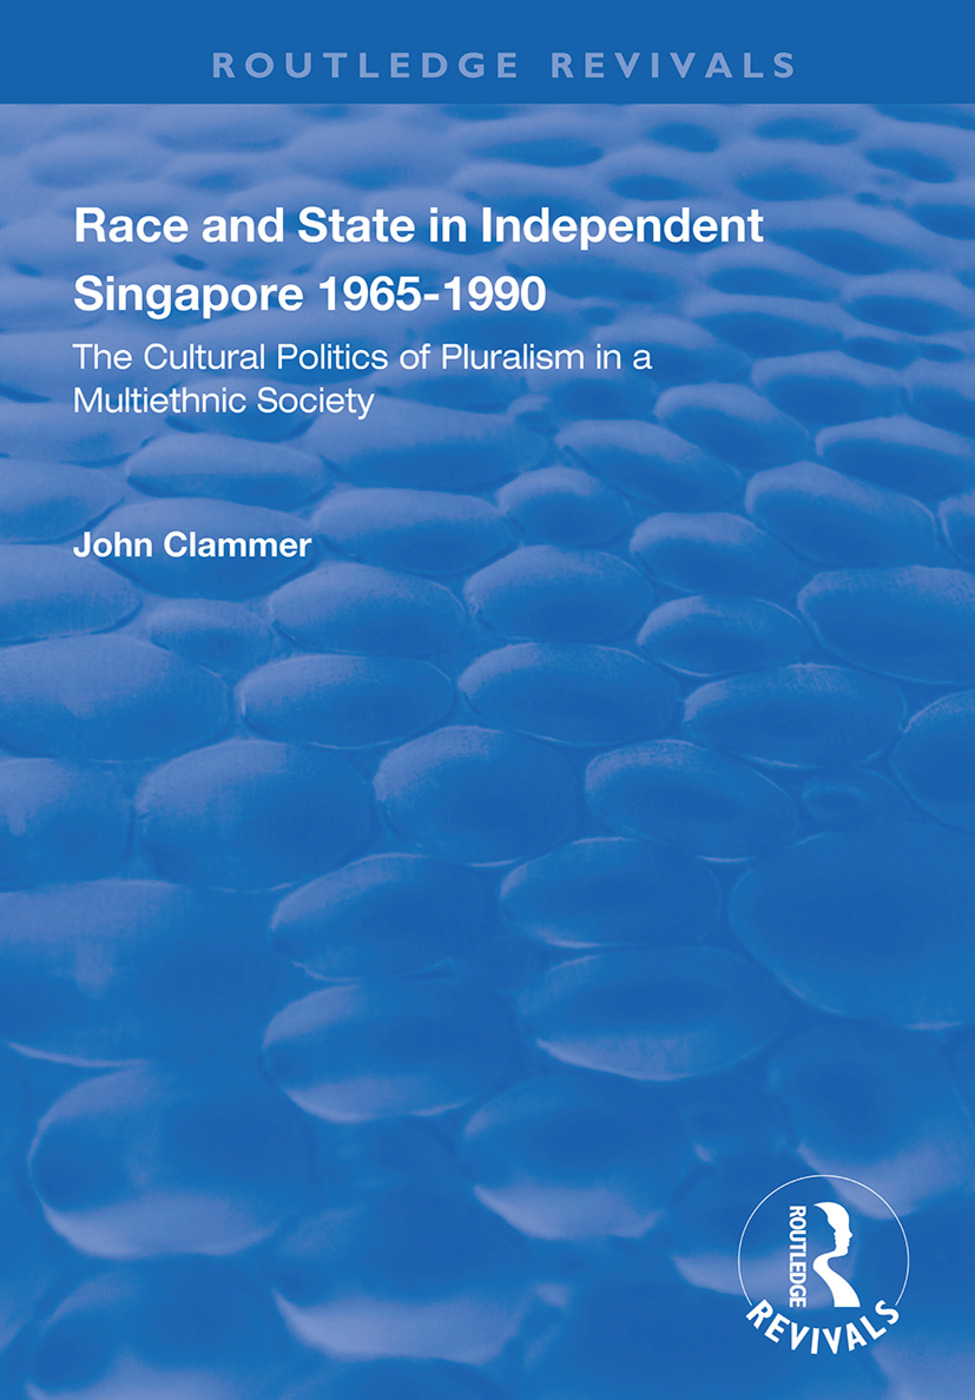 Ideology and Development in Singapore